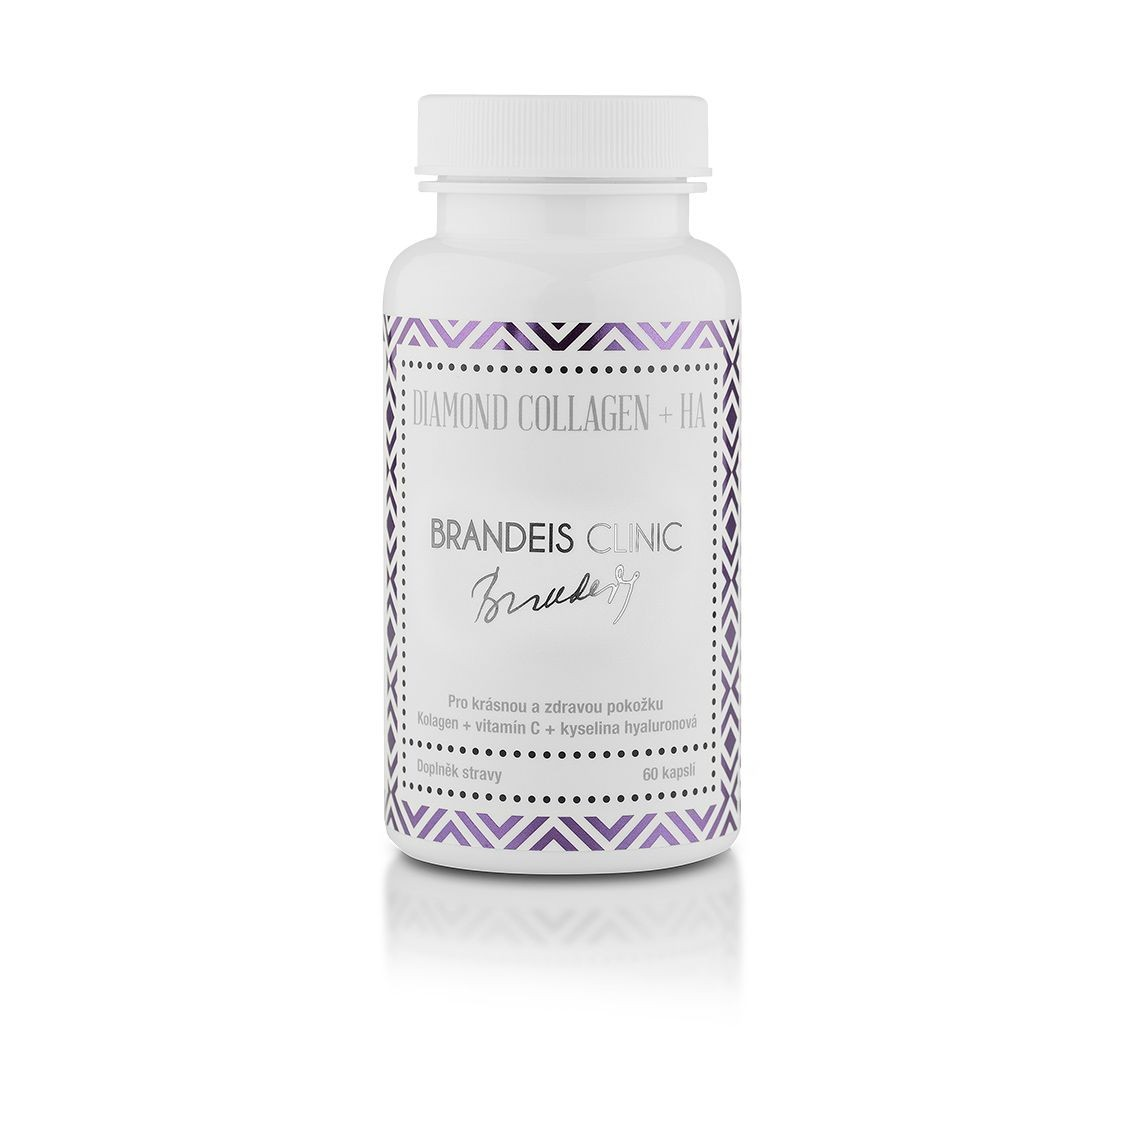 DIAMOND COLLAGEN + HA by Brandeis Clinic